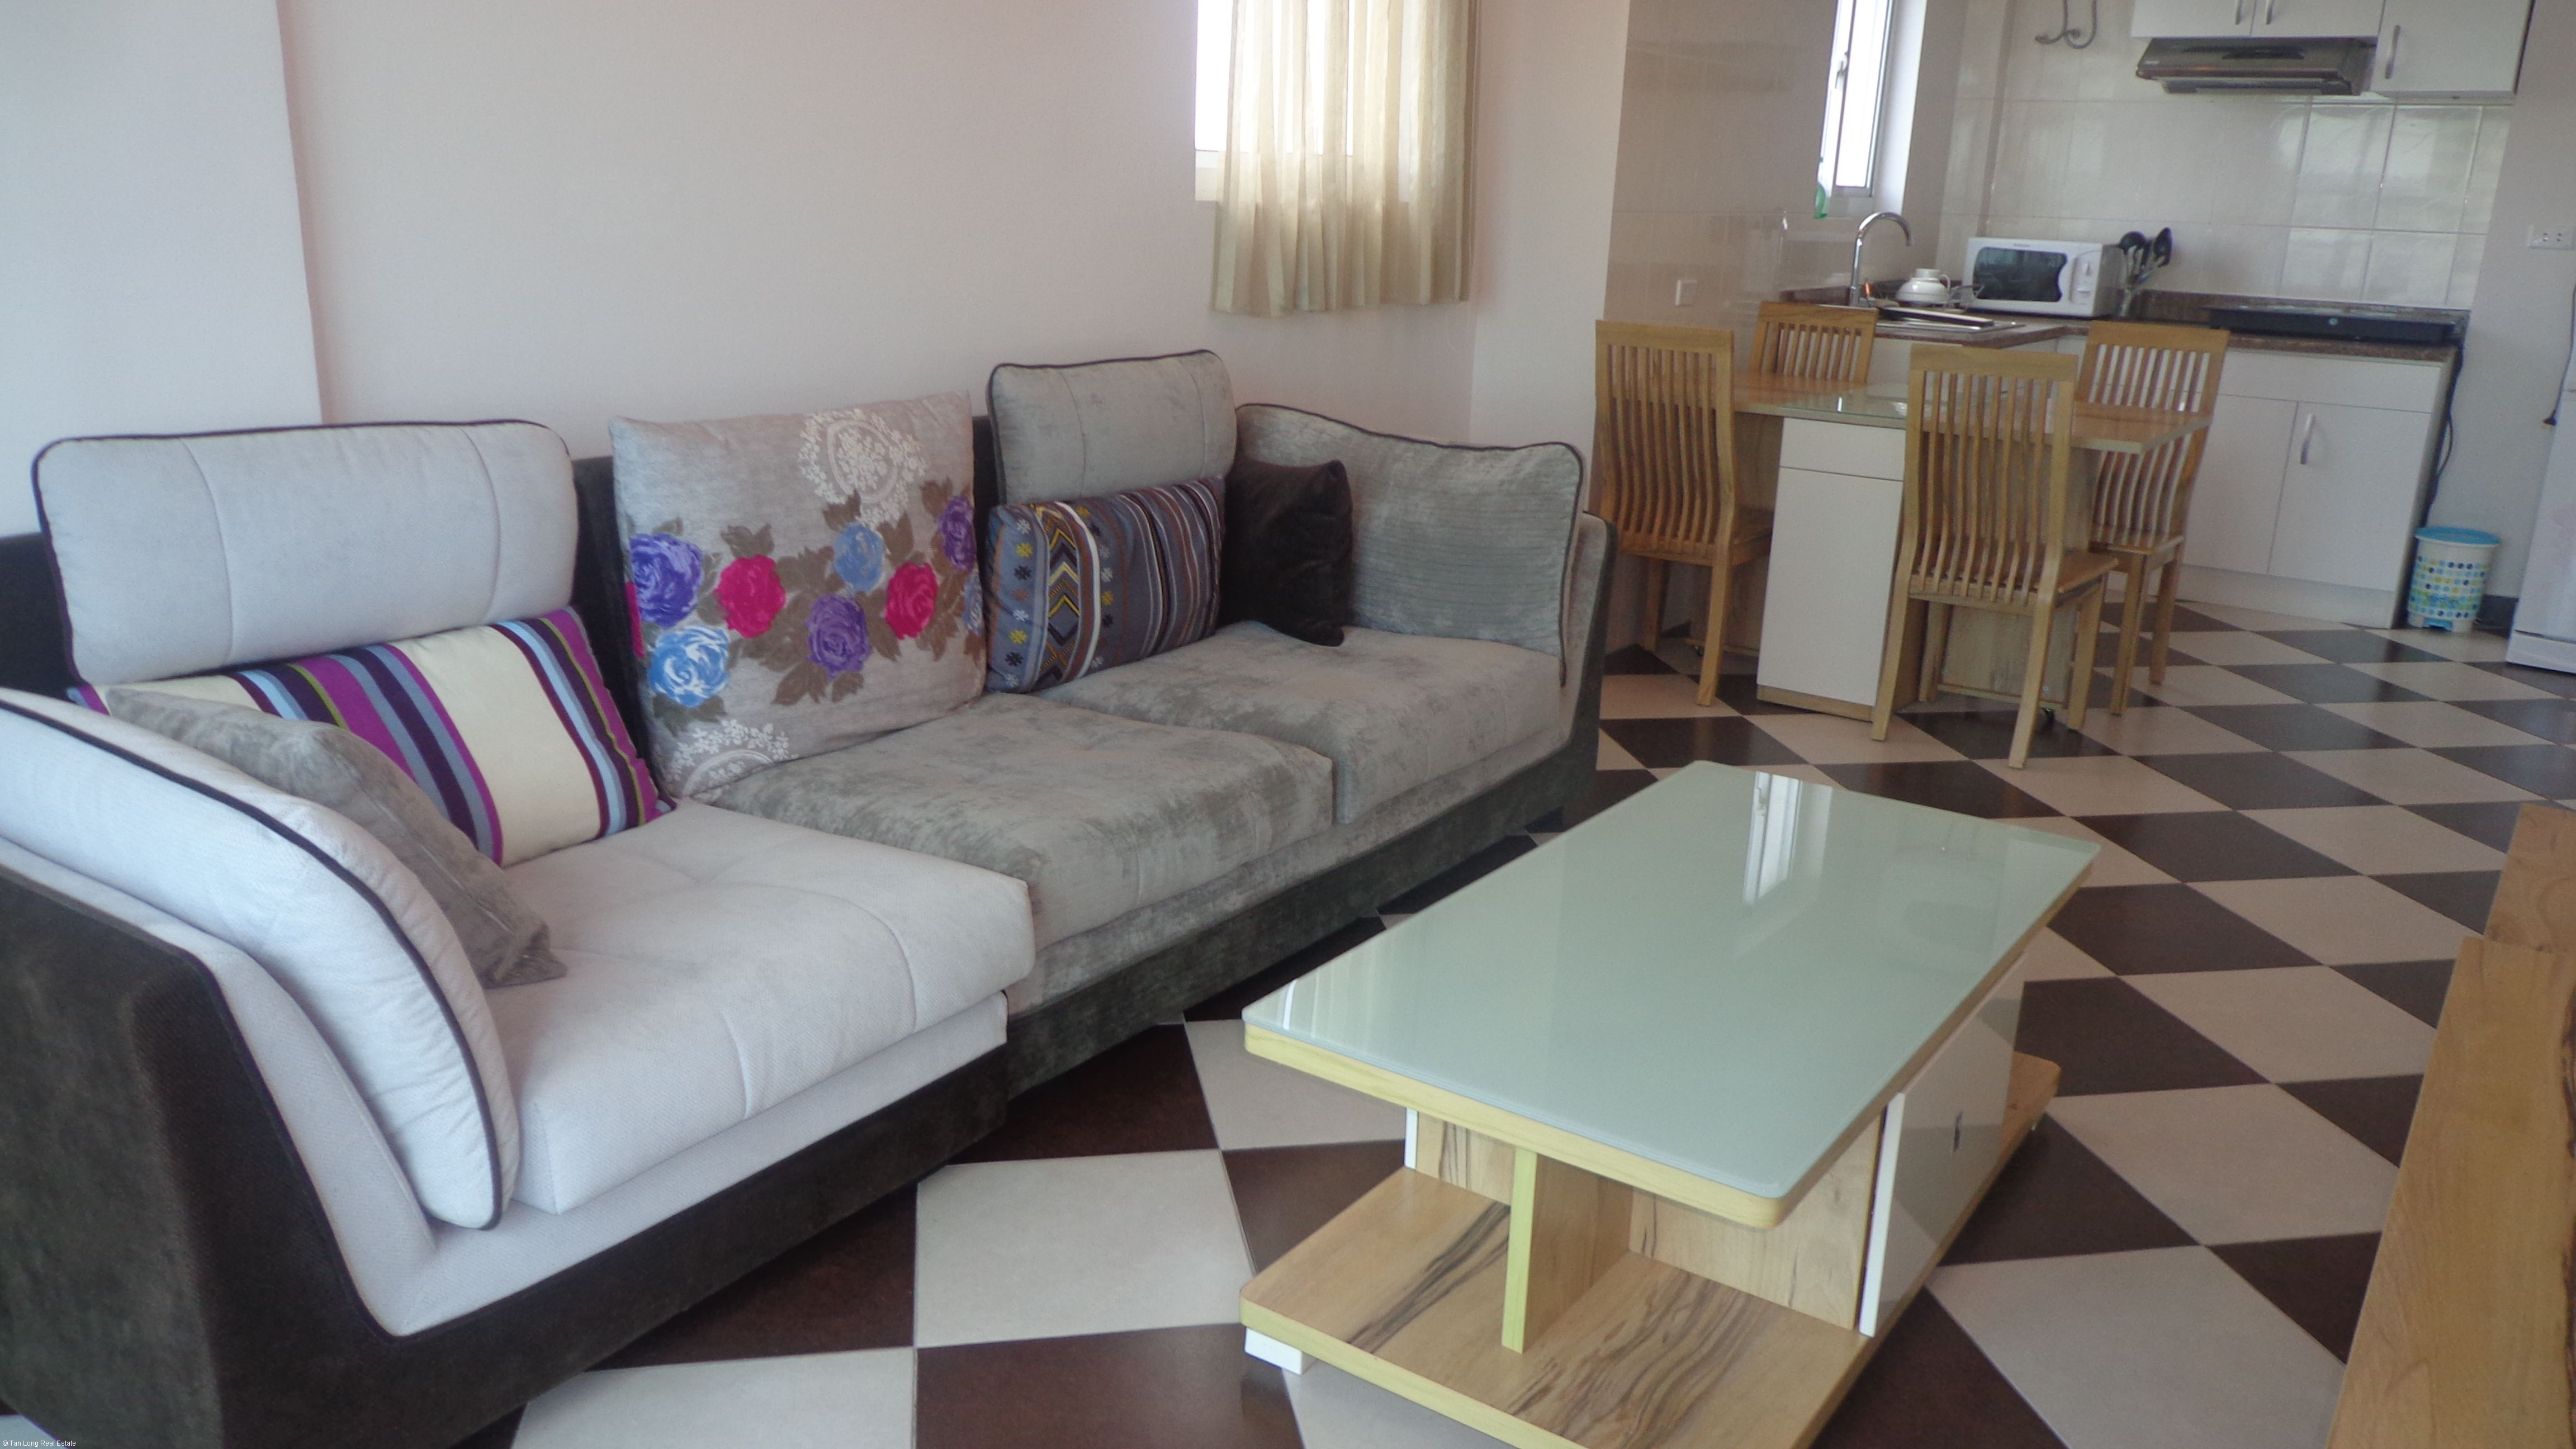 2 bedroom serviced apartment for rent in Hoang Hoa Tham street, Ba Dinh district